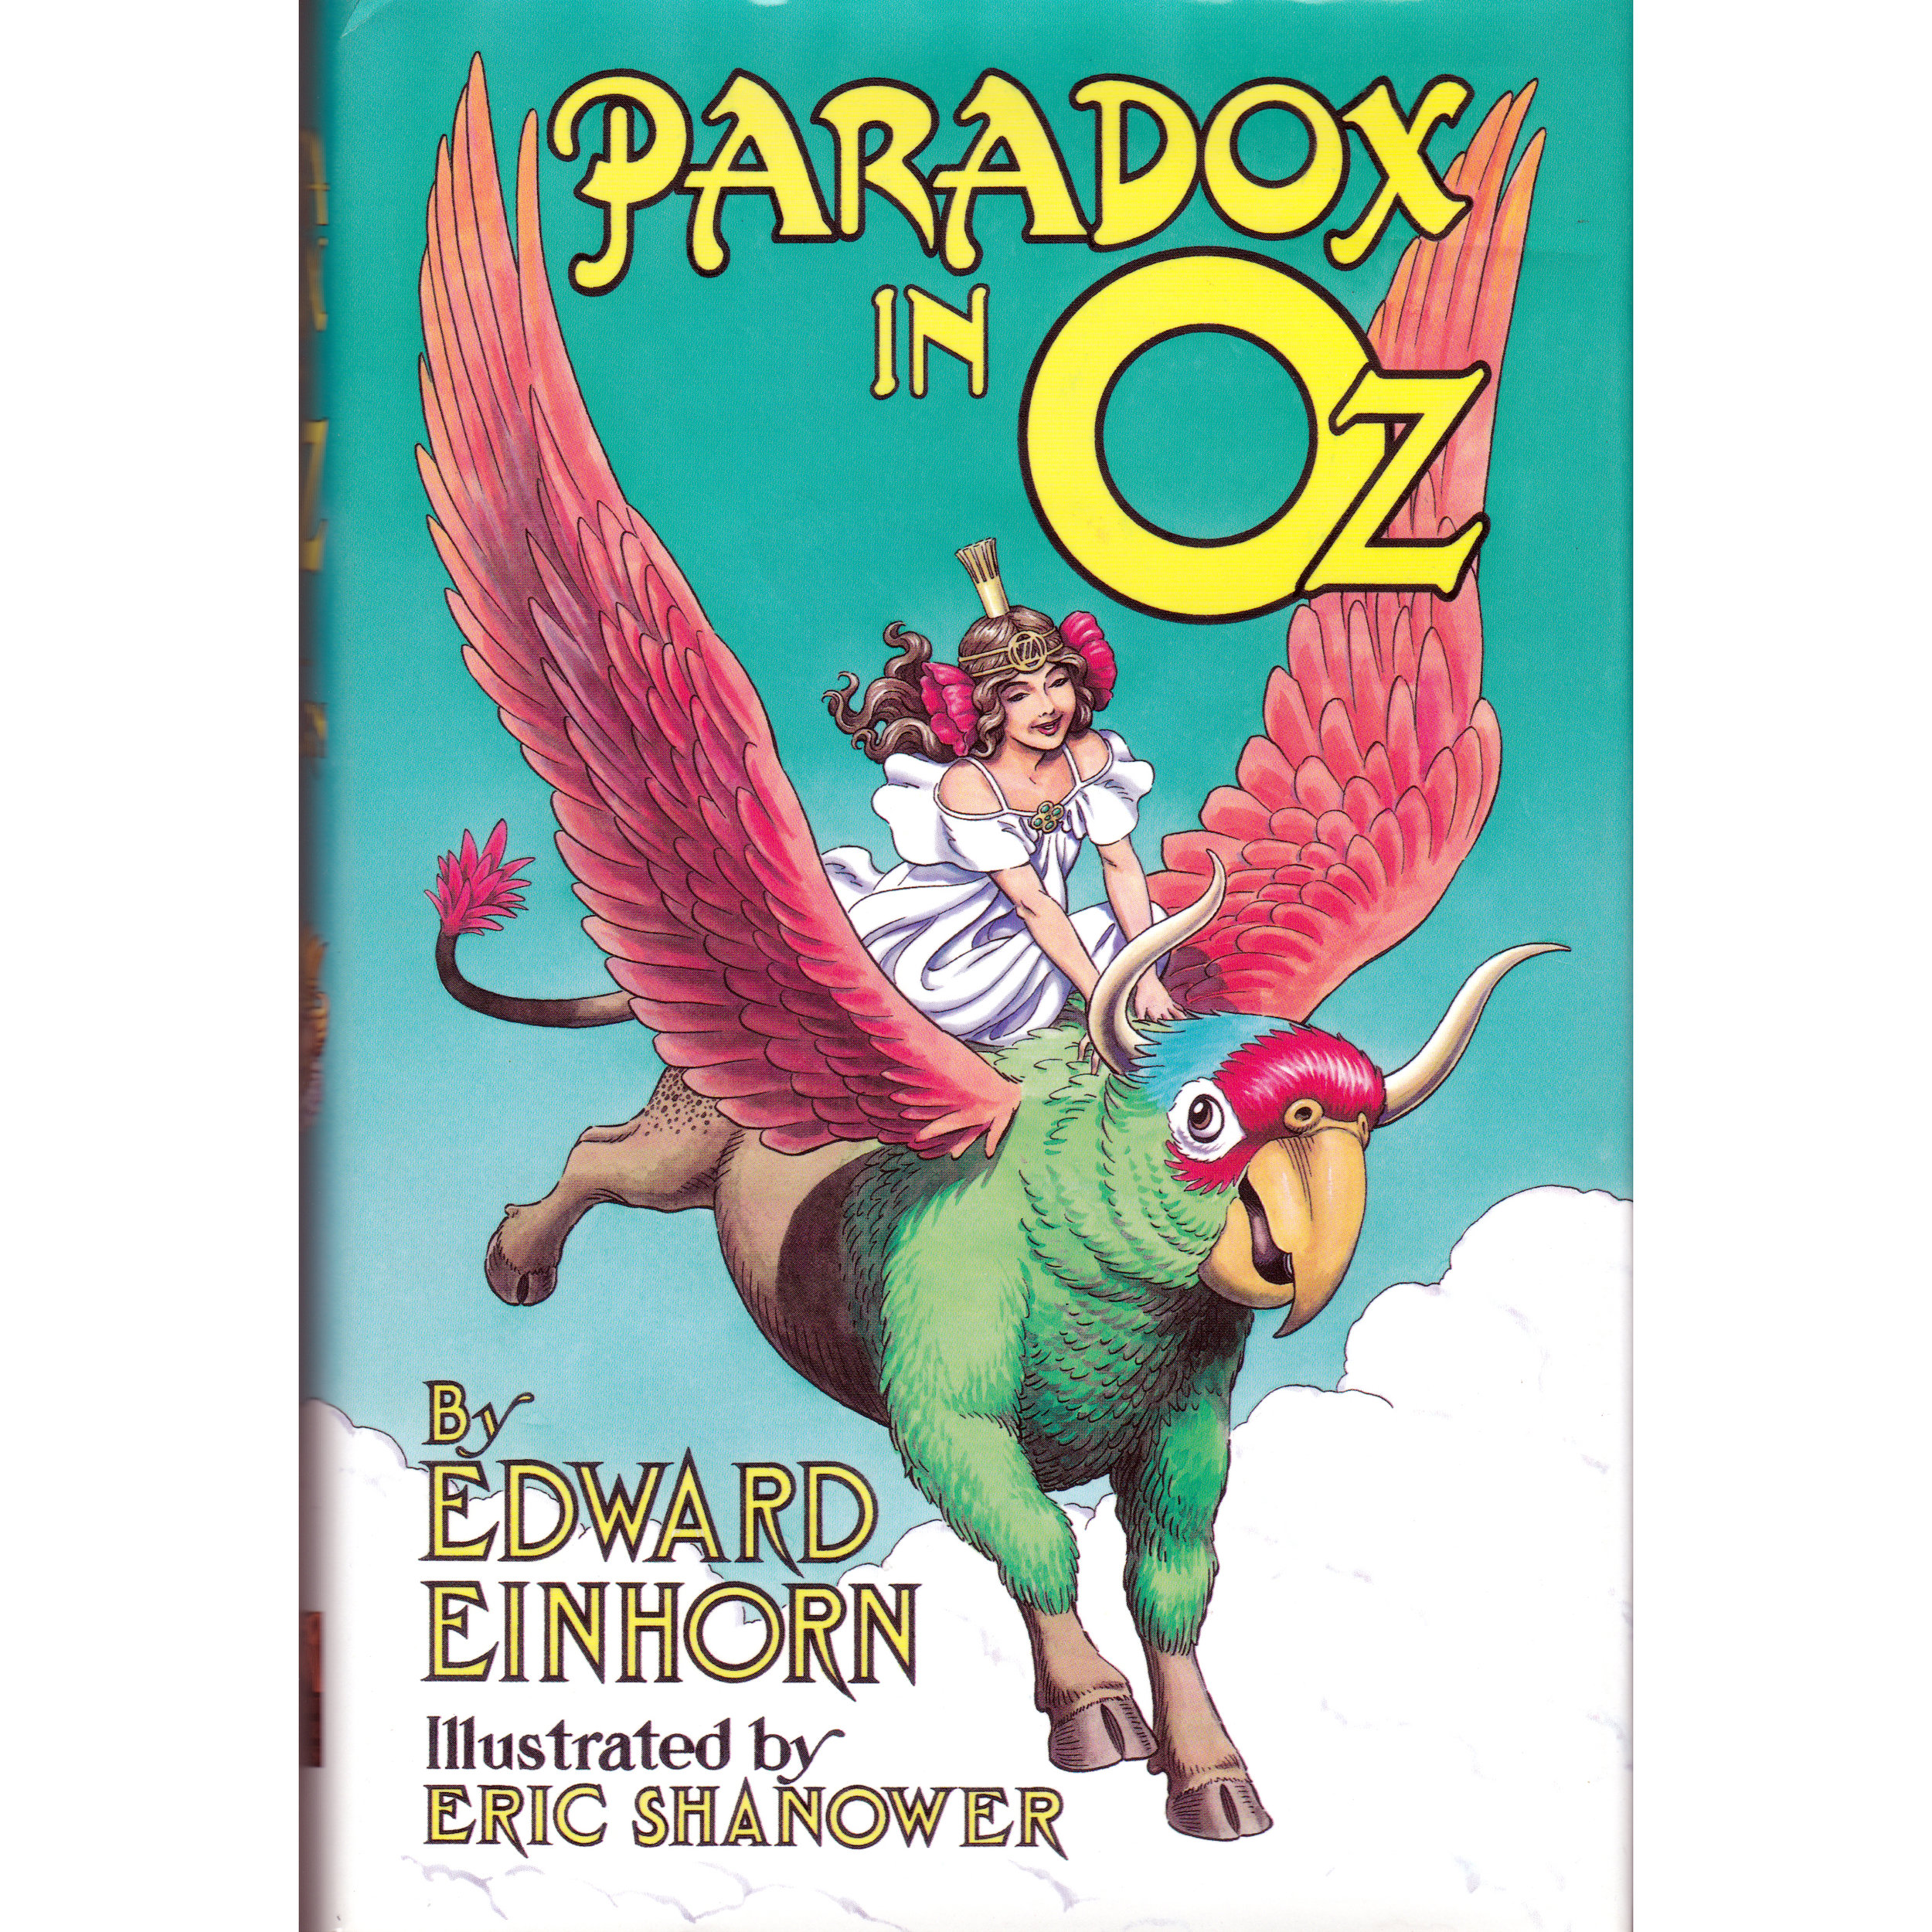 Paradox in Oz - OZ IS AGING! Ozma, the lovely girl ruler of Oz, must find a way to restore the enchantment that keeps her people young and vibrant. A lovable but puzzling Parrot-Ox named Tempus carries Ozma back through time to seek the source of the aging enchantment. Ozma meets strange versions of her closest friends in an alternate timestream: Glinda, the Wizard, the Cowardly Lion, even Ozma herself! Illustrated by Eric Shanower.